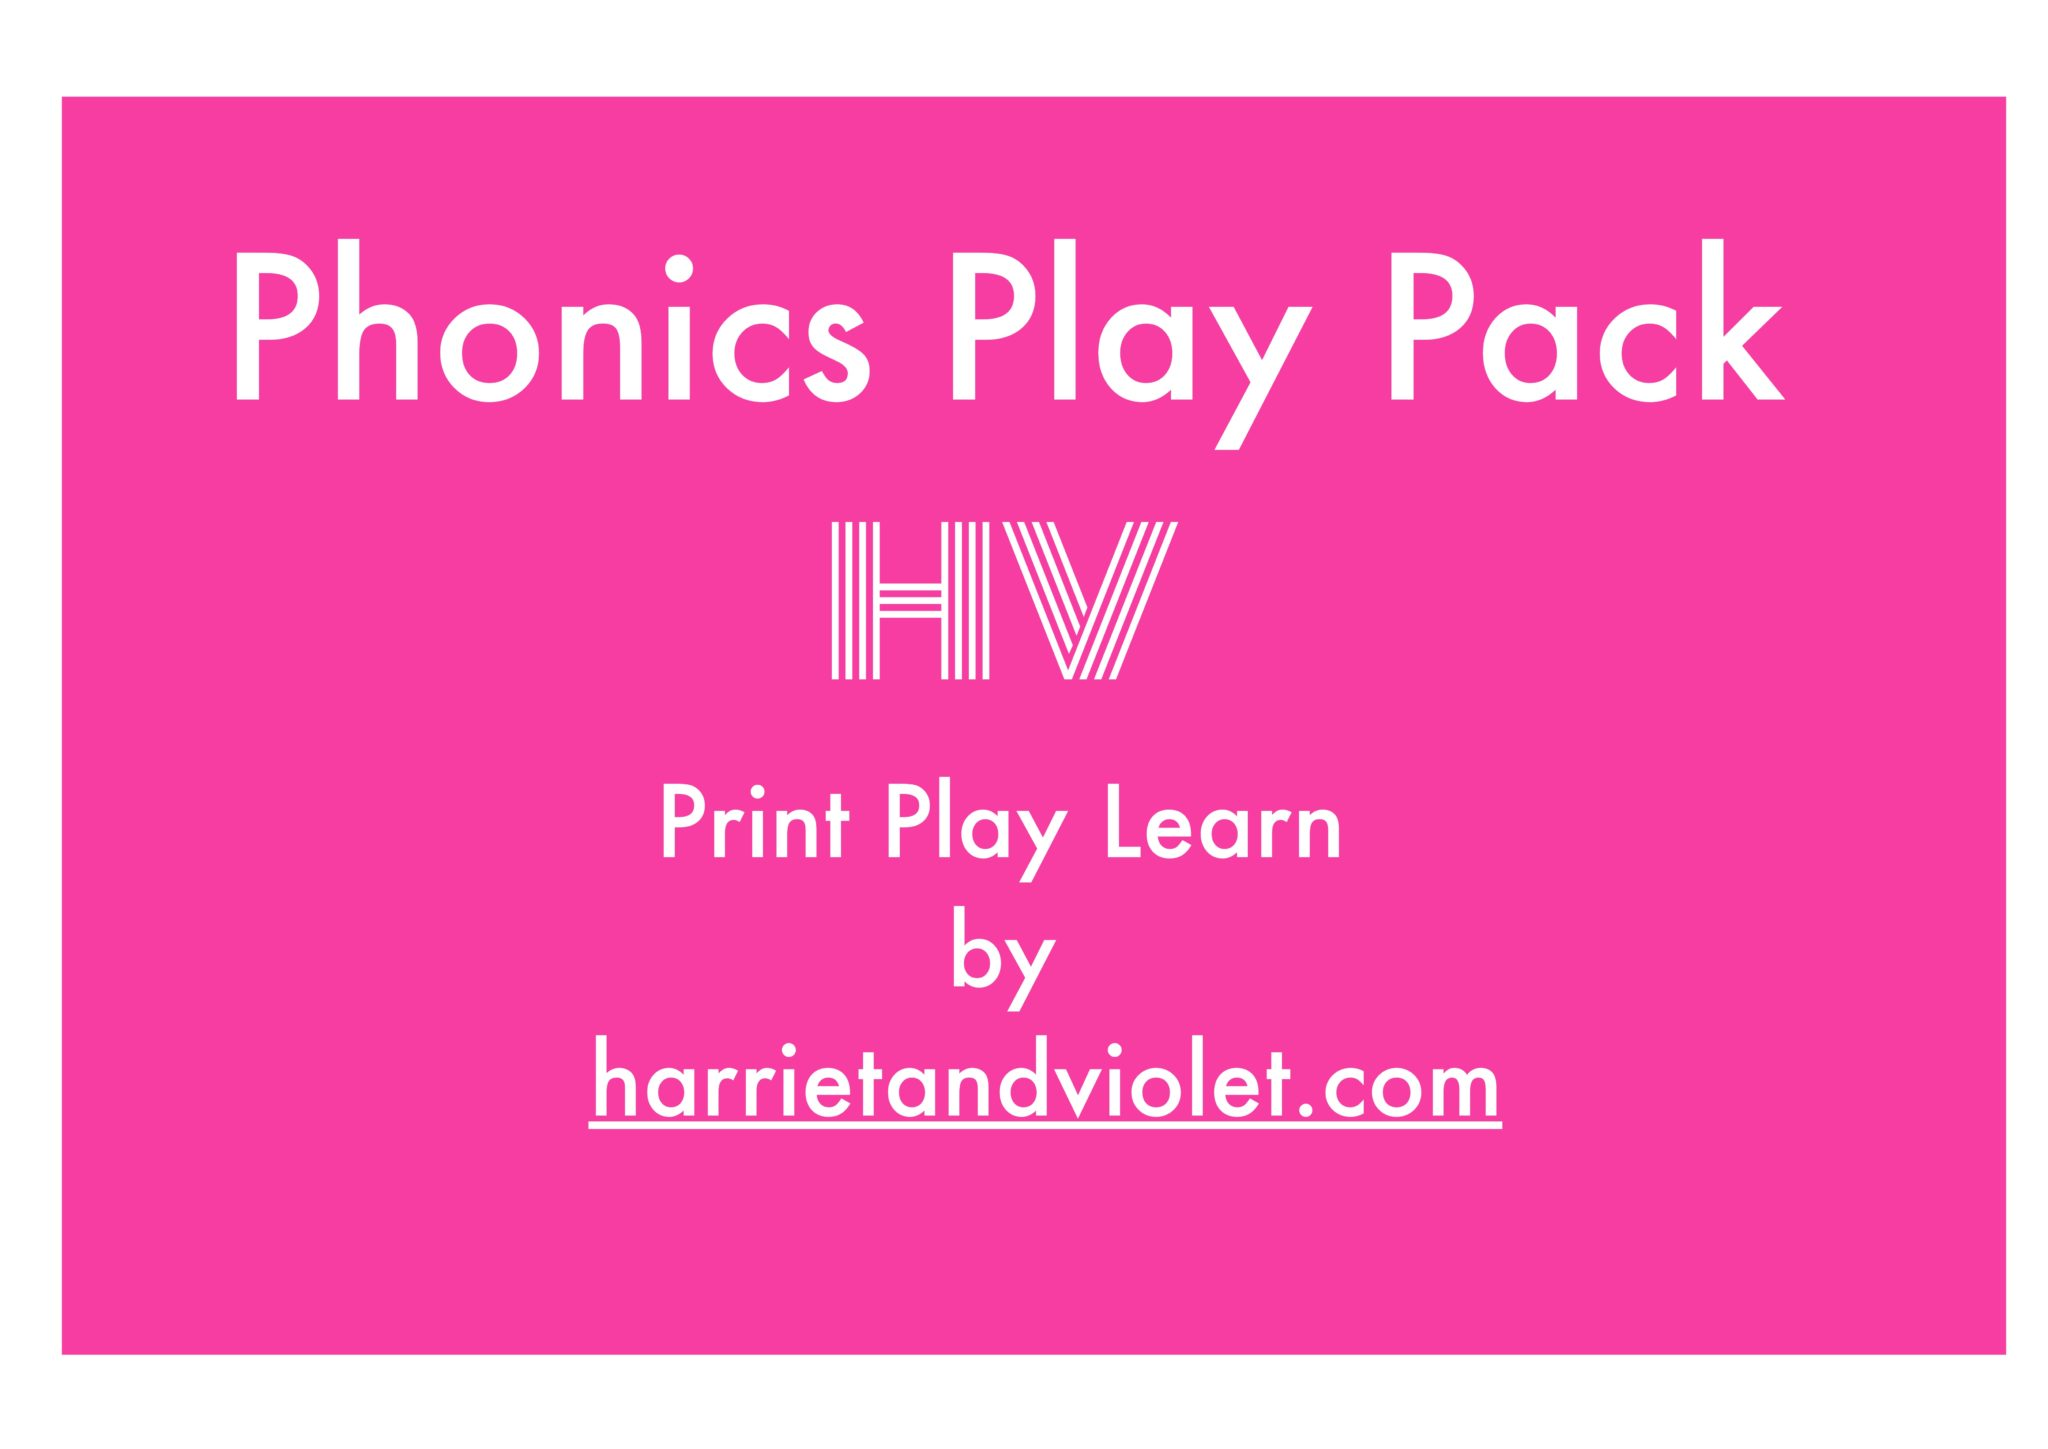 Phonics play pack front cover